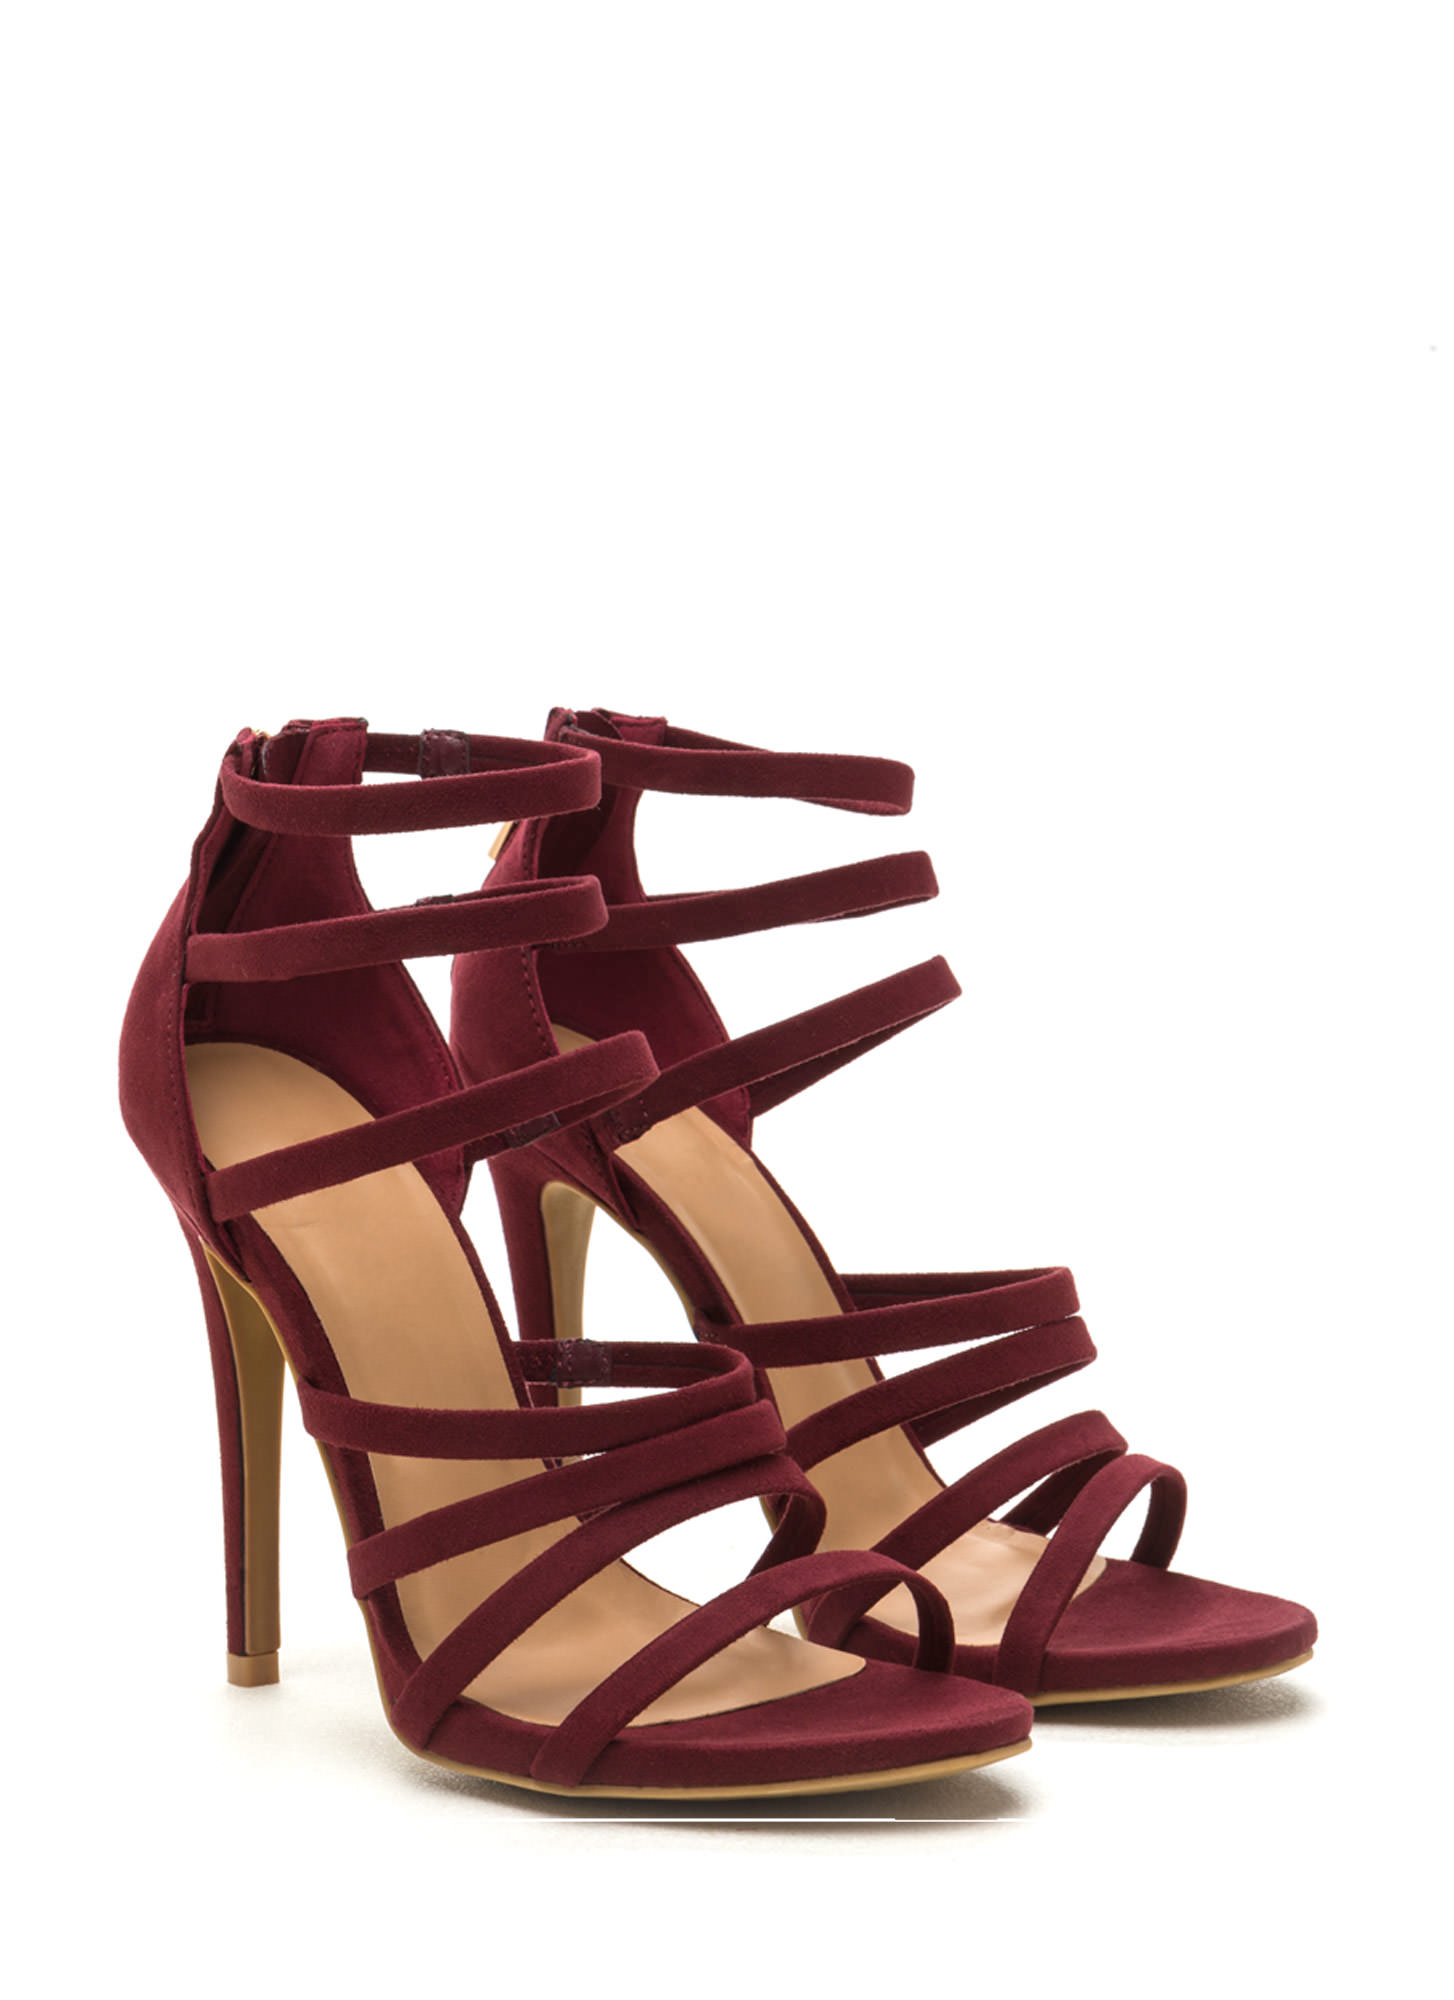 Top Rung Faux Suede Strappy Heels BURGUNDY